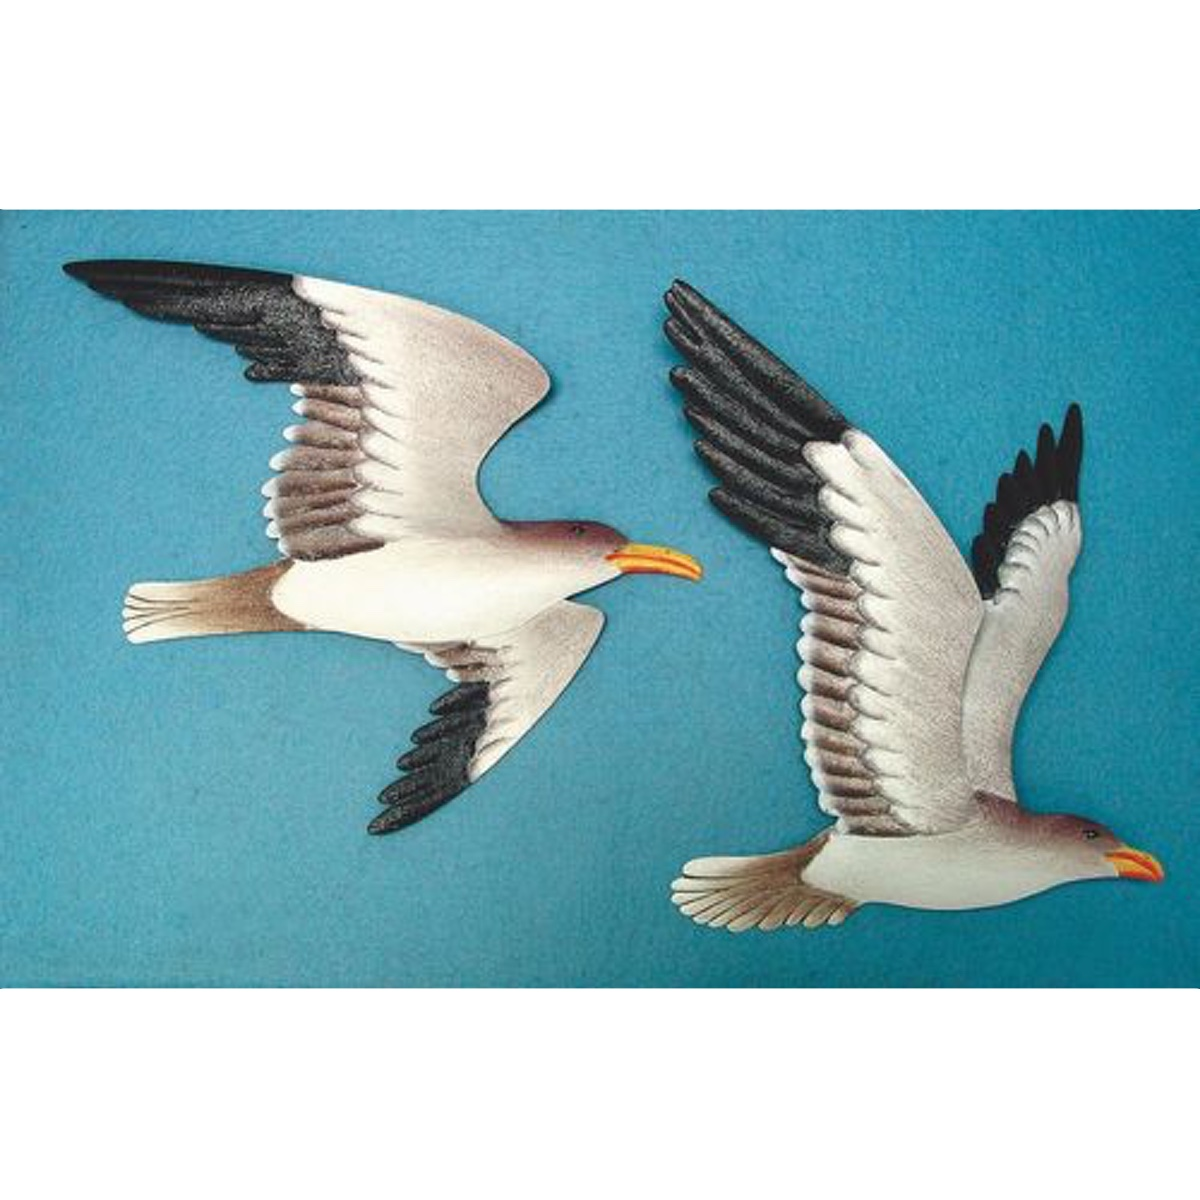 2 Metal Seagull Wall Plaques Soaring Birds Nautical Home Decor Flying Shore Birds by